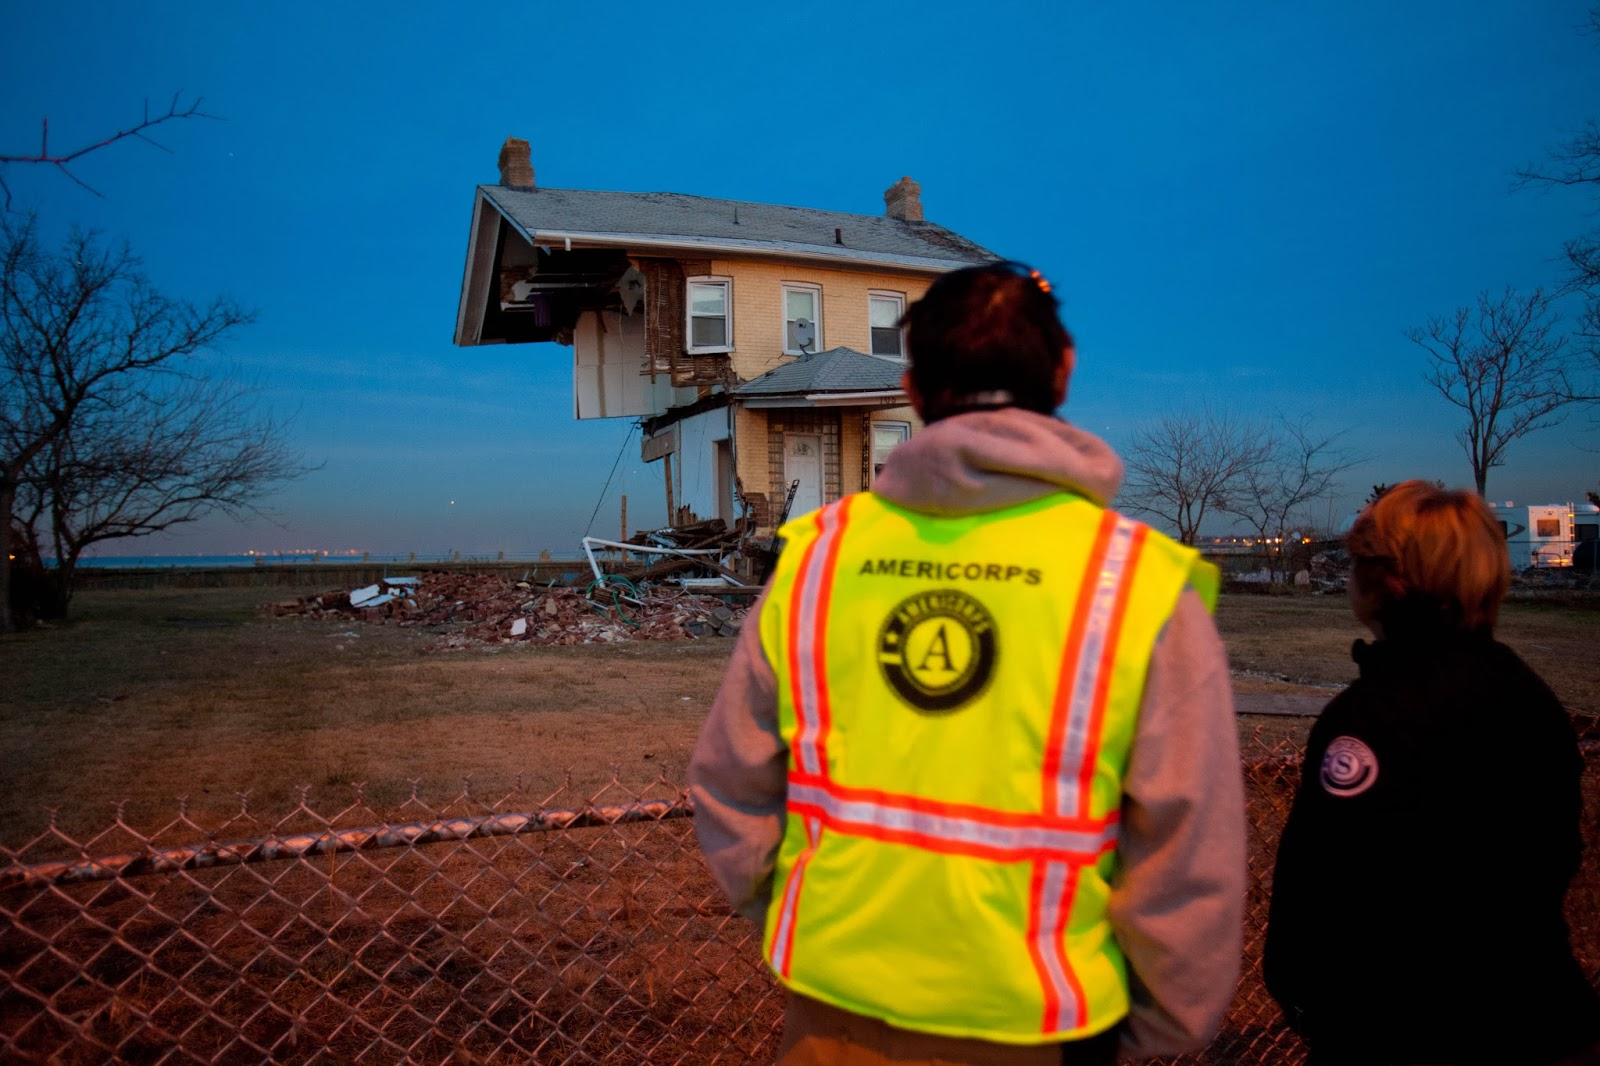 CNCS CEO Wendy Spencer and an AmeriCorps member observe the damage of a 150-year-old home in Union Beach, NJ after Hurricane Sandy